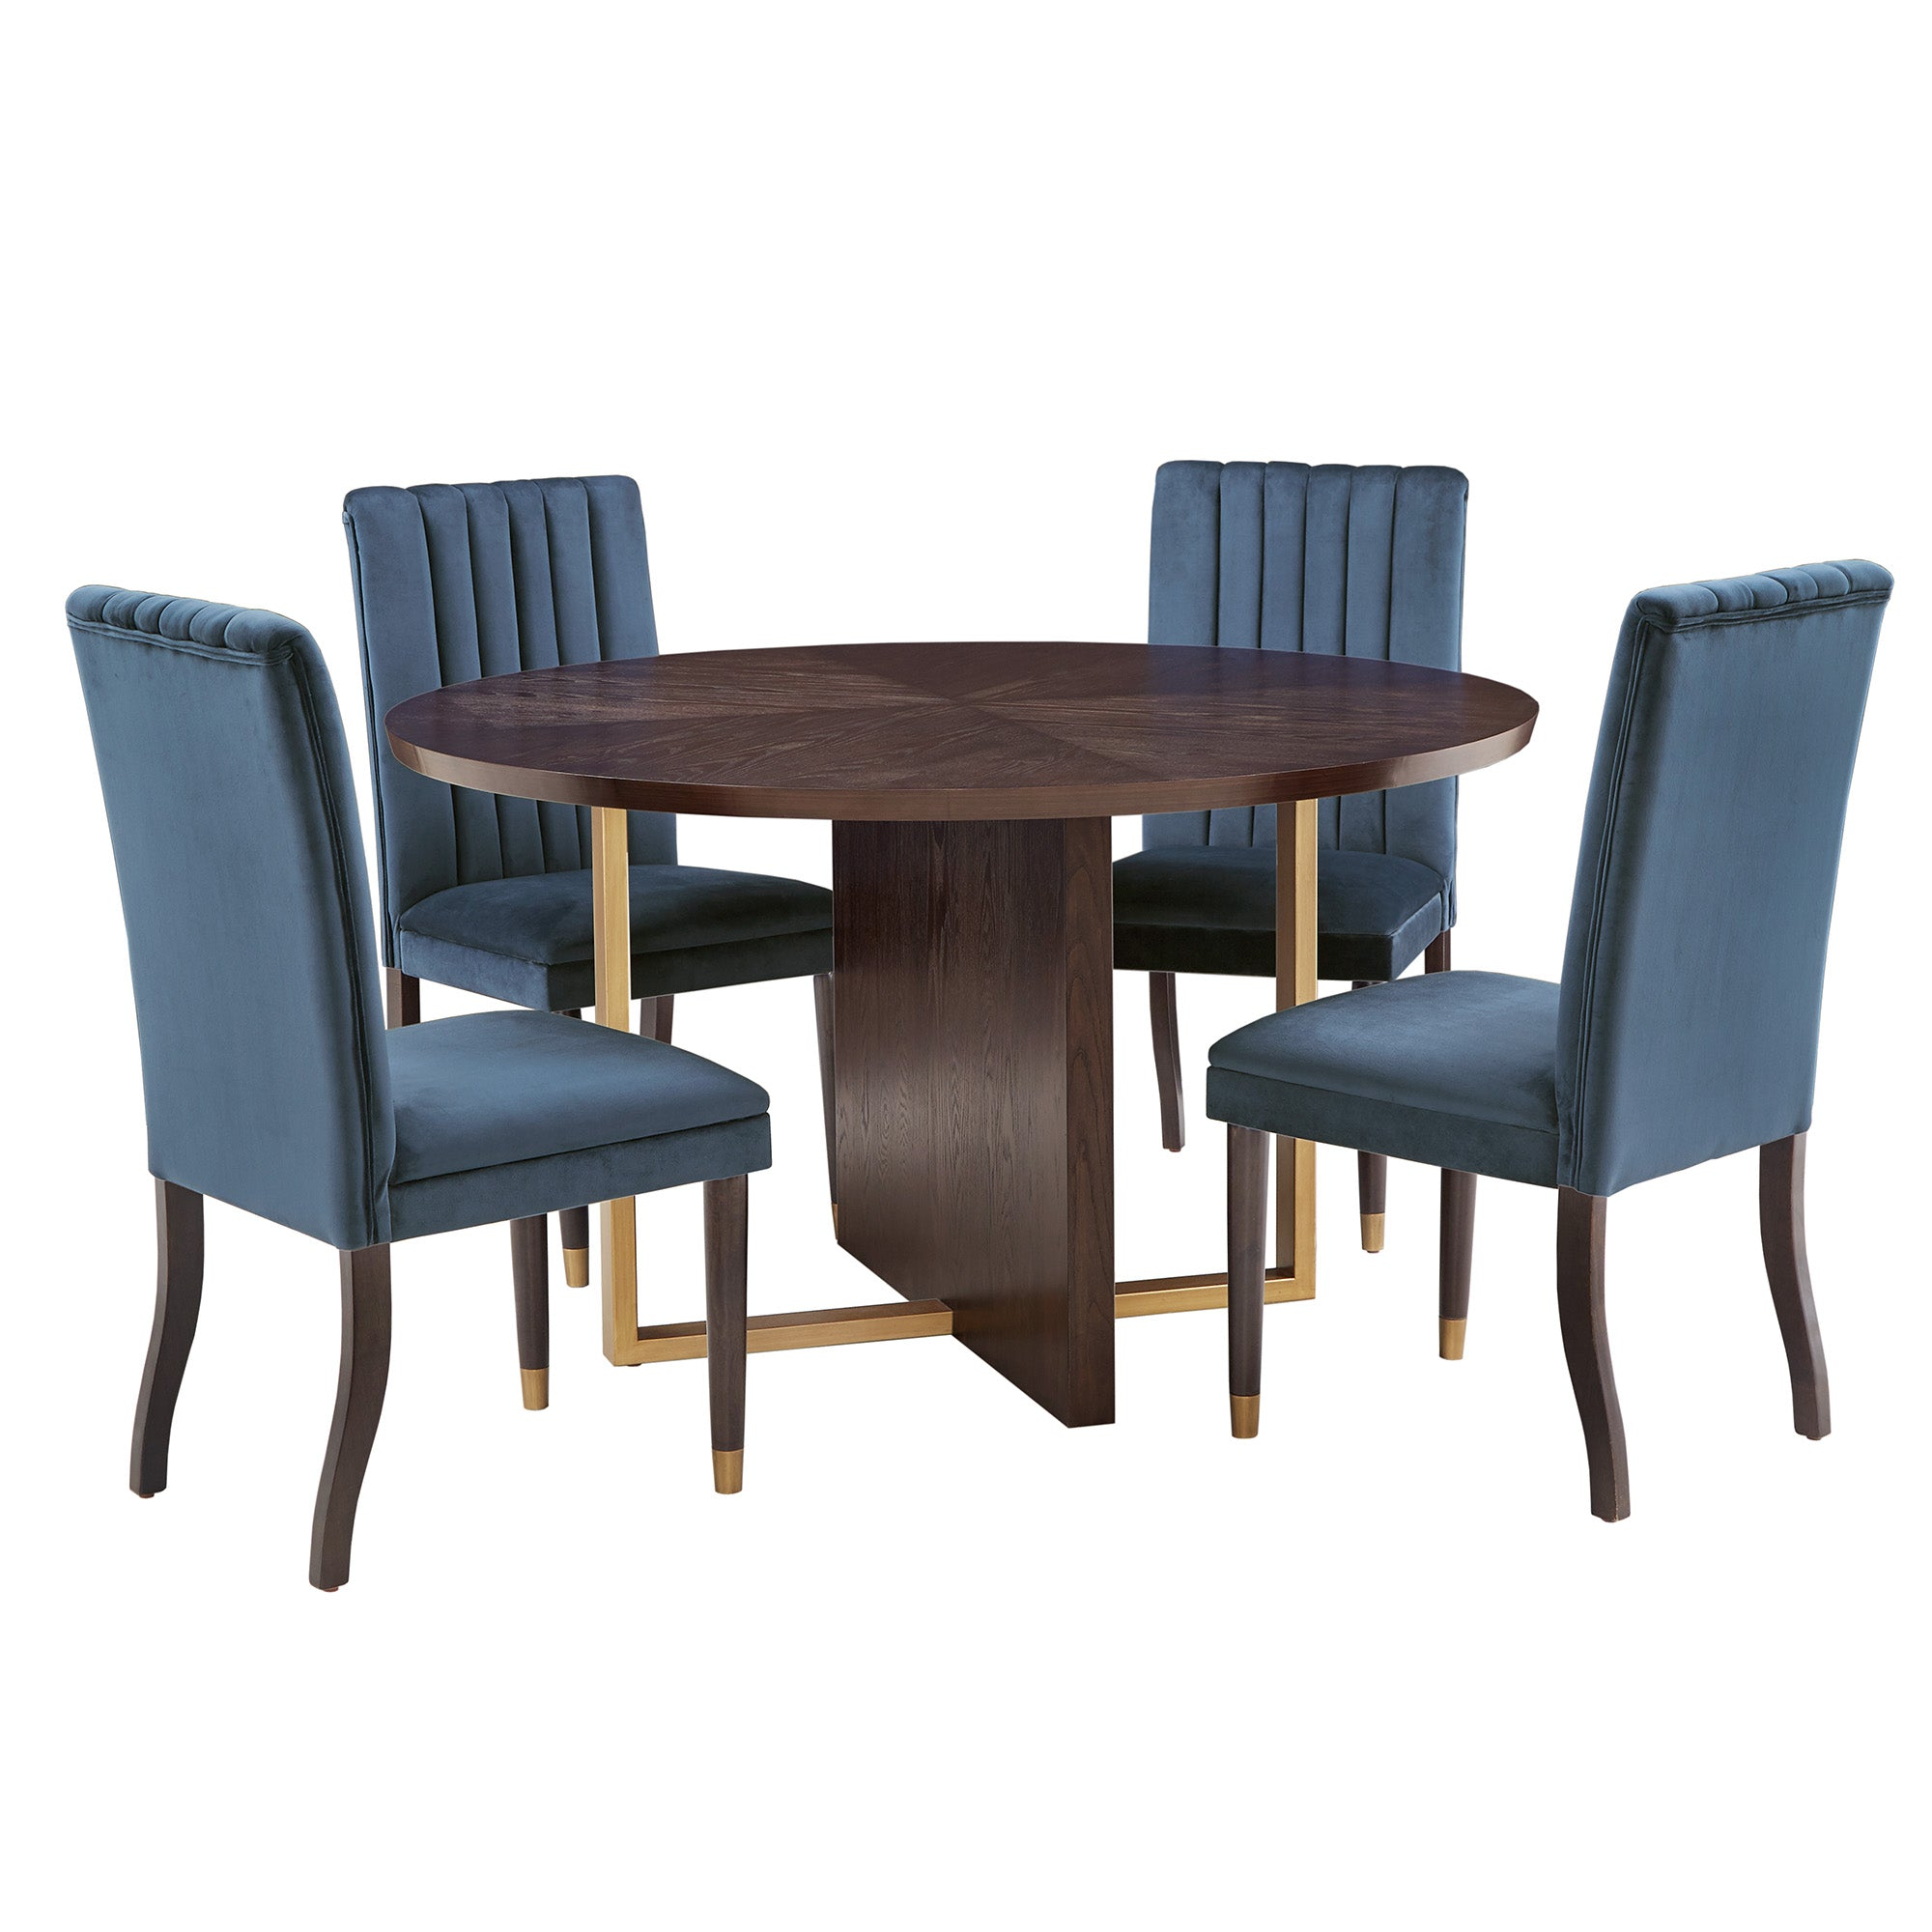 Espresso Wood Velvet Upholstered Dining Set - 5-Piece Set, Blue Velvet Chairs